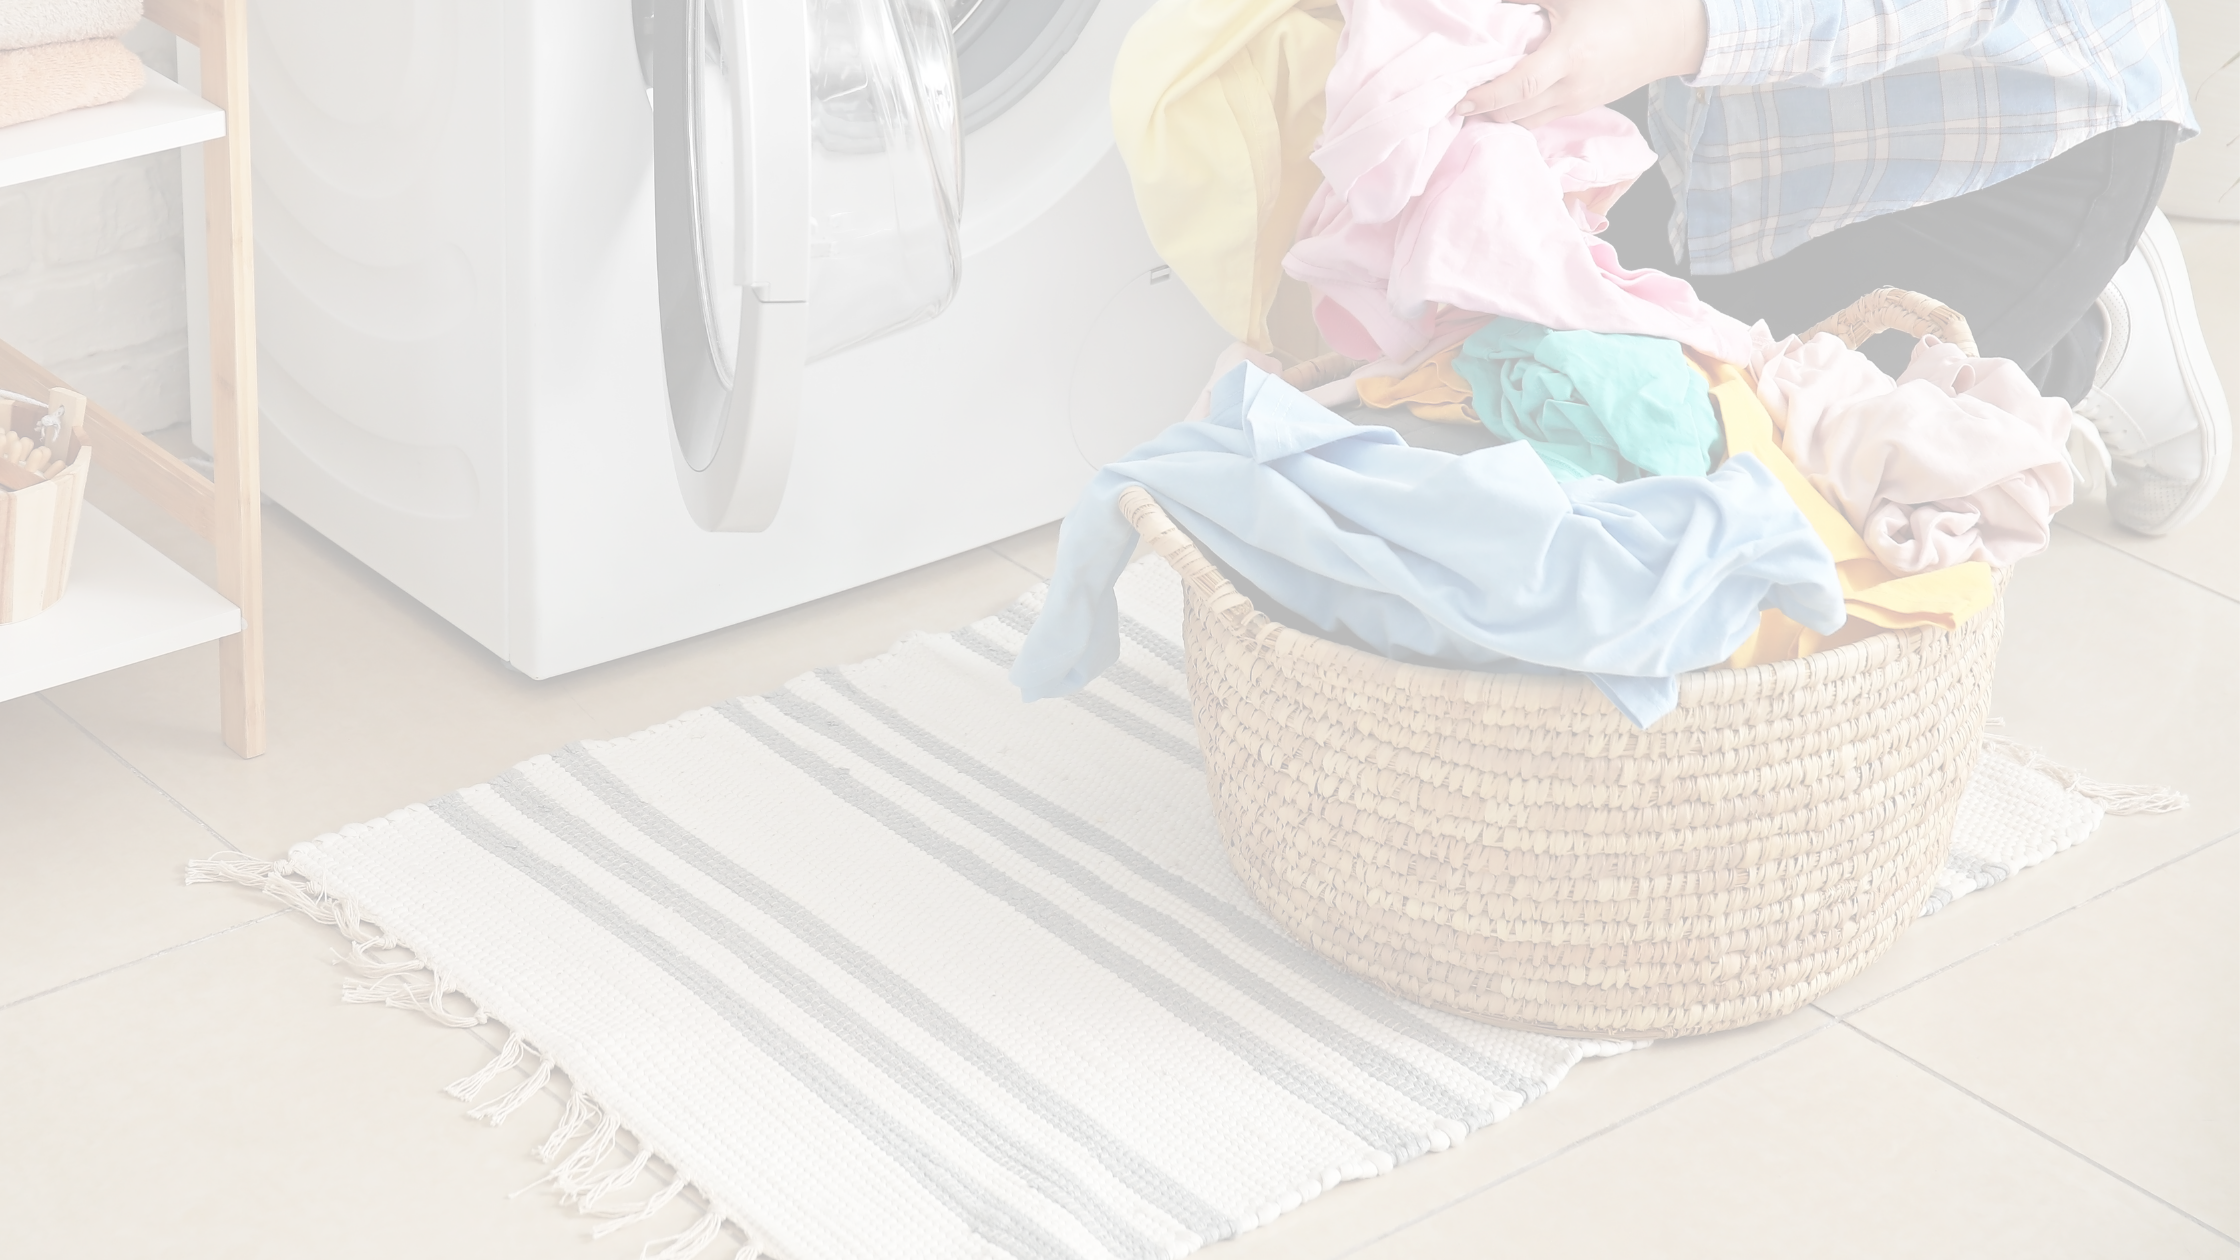 Woman in laundry washing clothes and rug